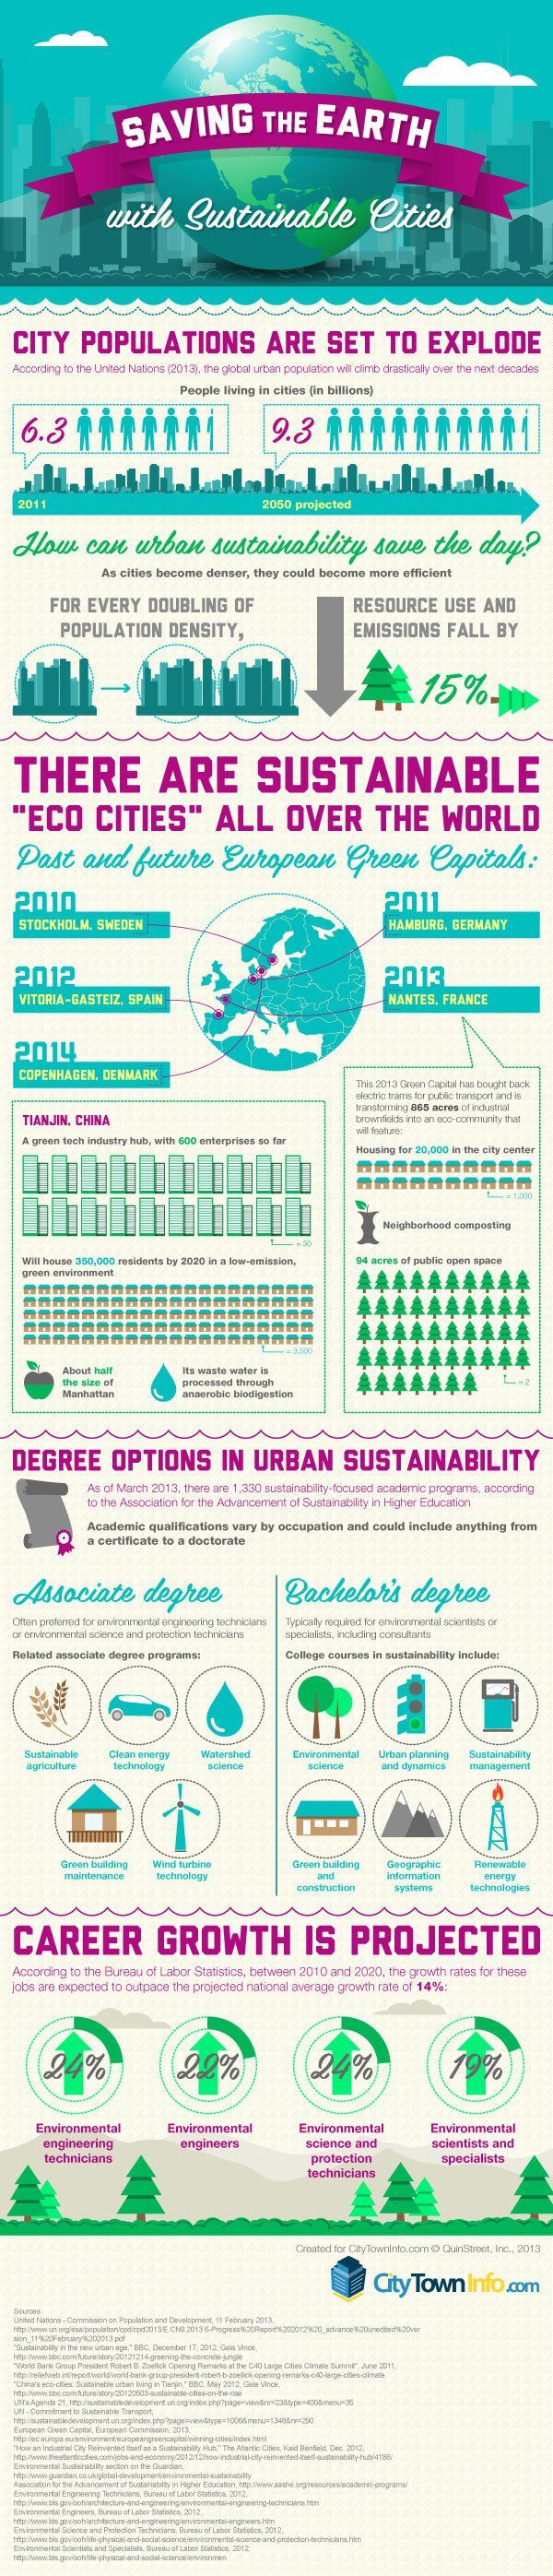 Saving the Earth with Sustainable Cities [Infographic] | ecogreenlove ••• This infographic is worth your attention. It may not be breaking news that the global urban population is set to increase over the coming decades, but did you know about the green tech hub being built in Tianjin, China or the predicted boom in job opportunities for sustainable cities professionals?